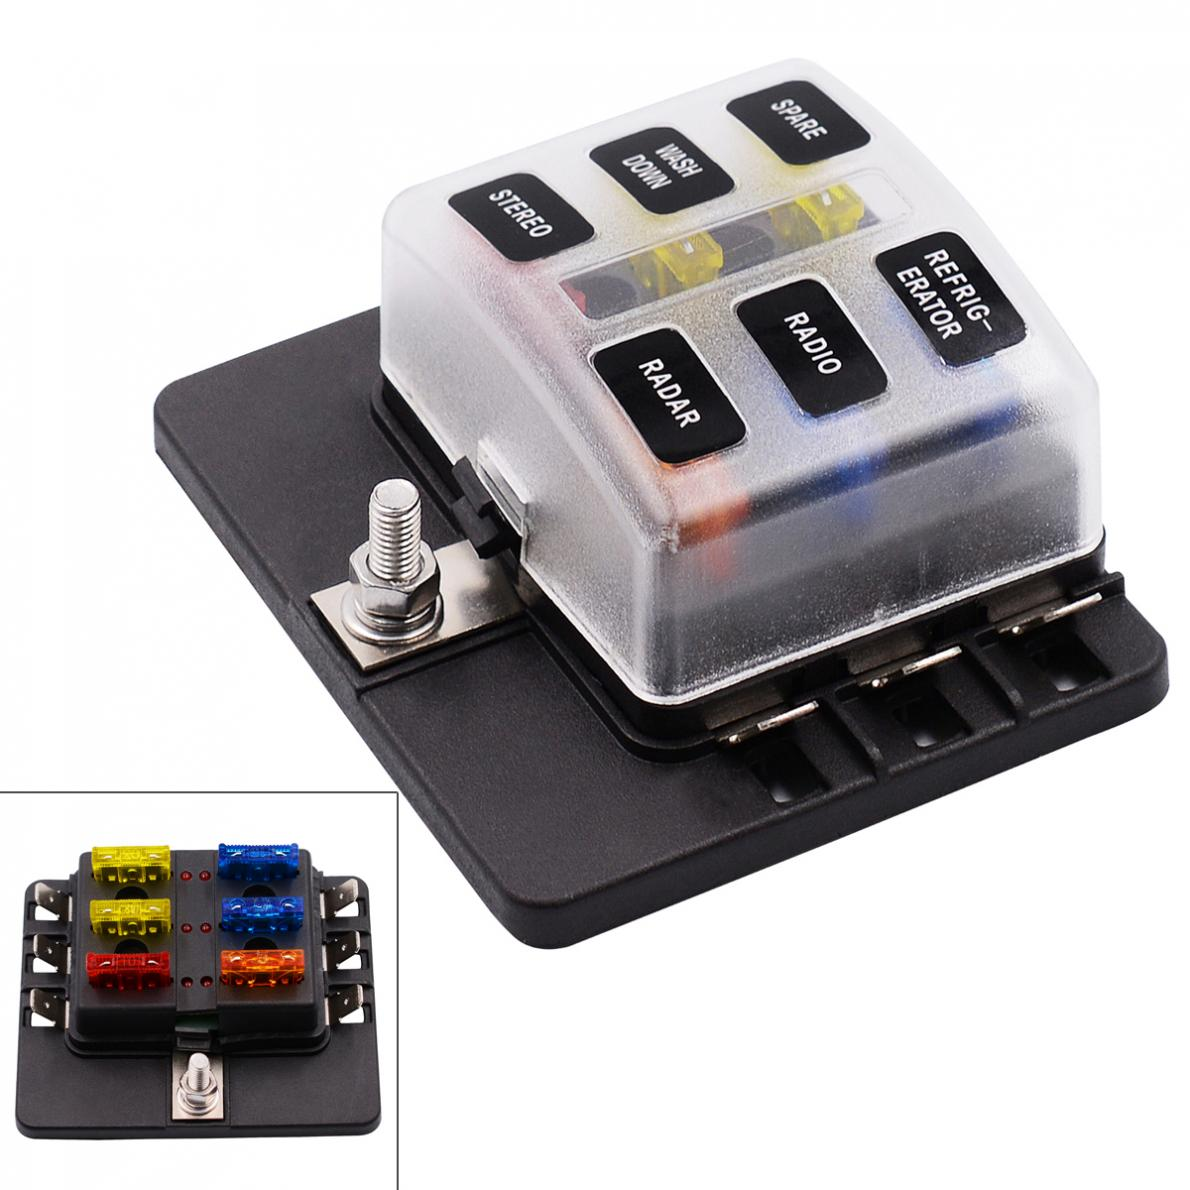 hight resolution of 6 way 12v 24v blade fuse box holder with led warning light kit for car boat marine trike